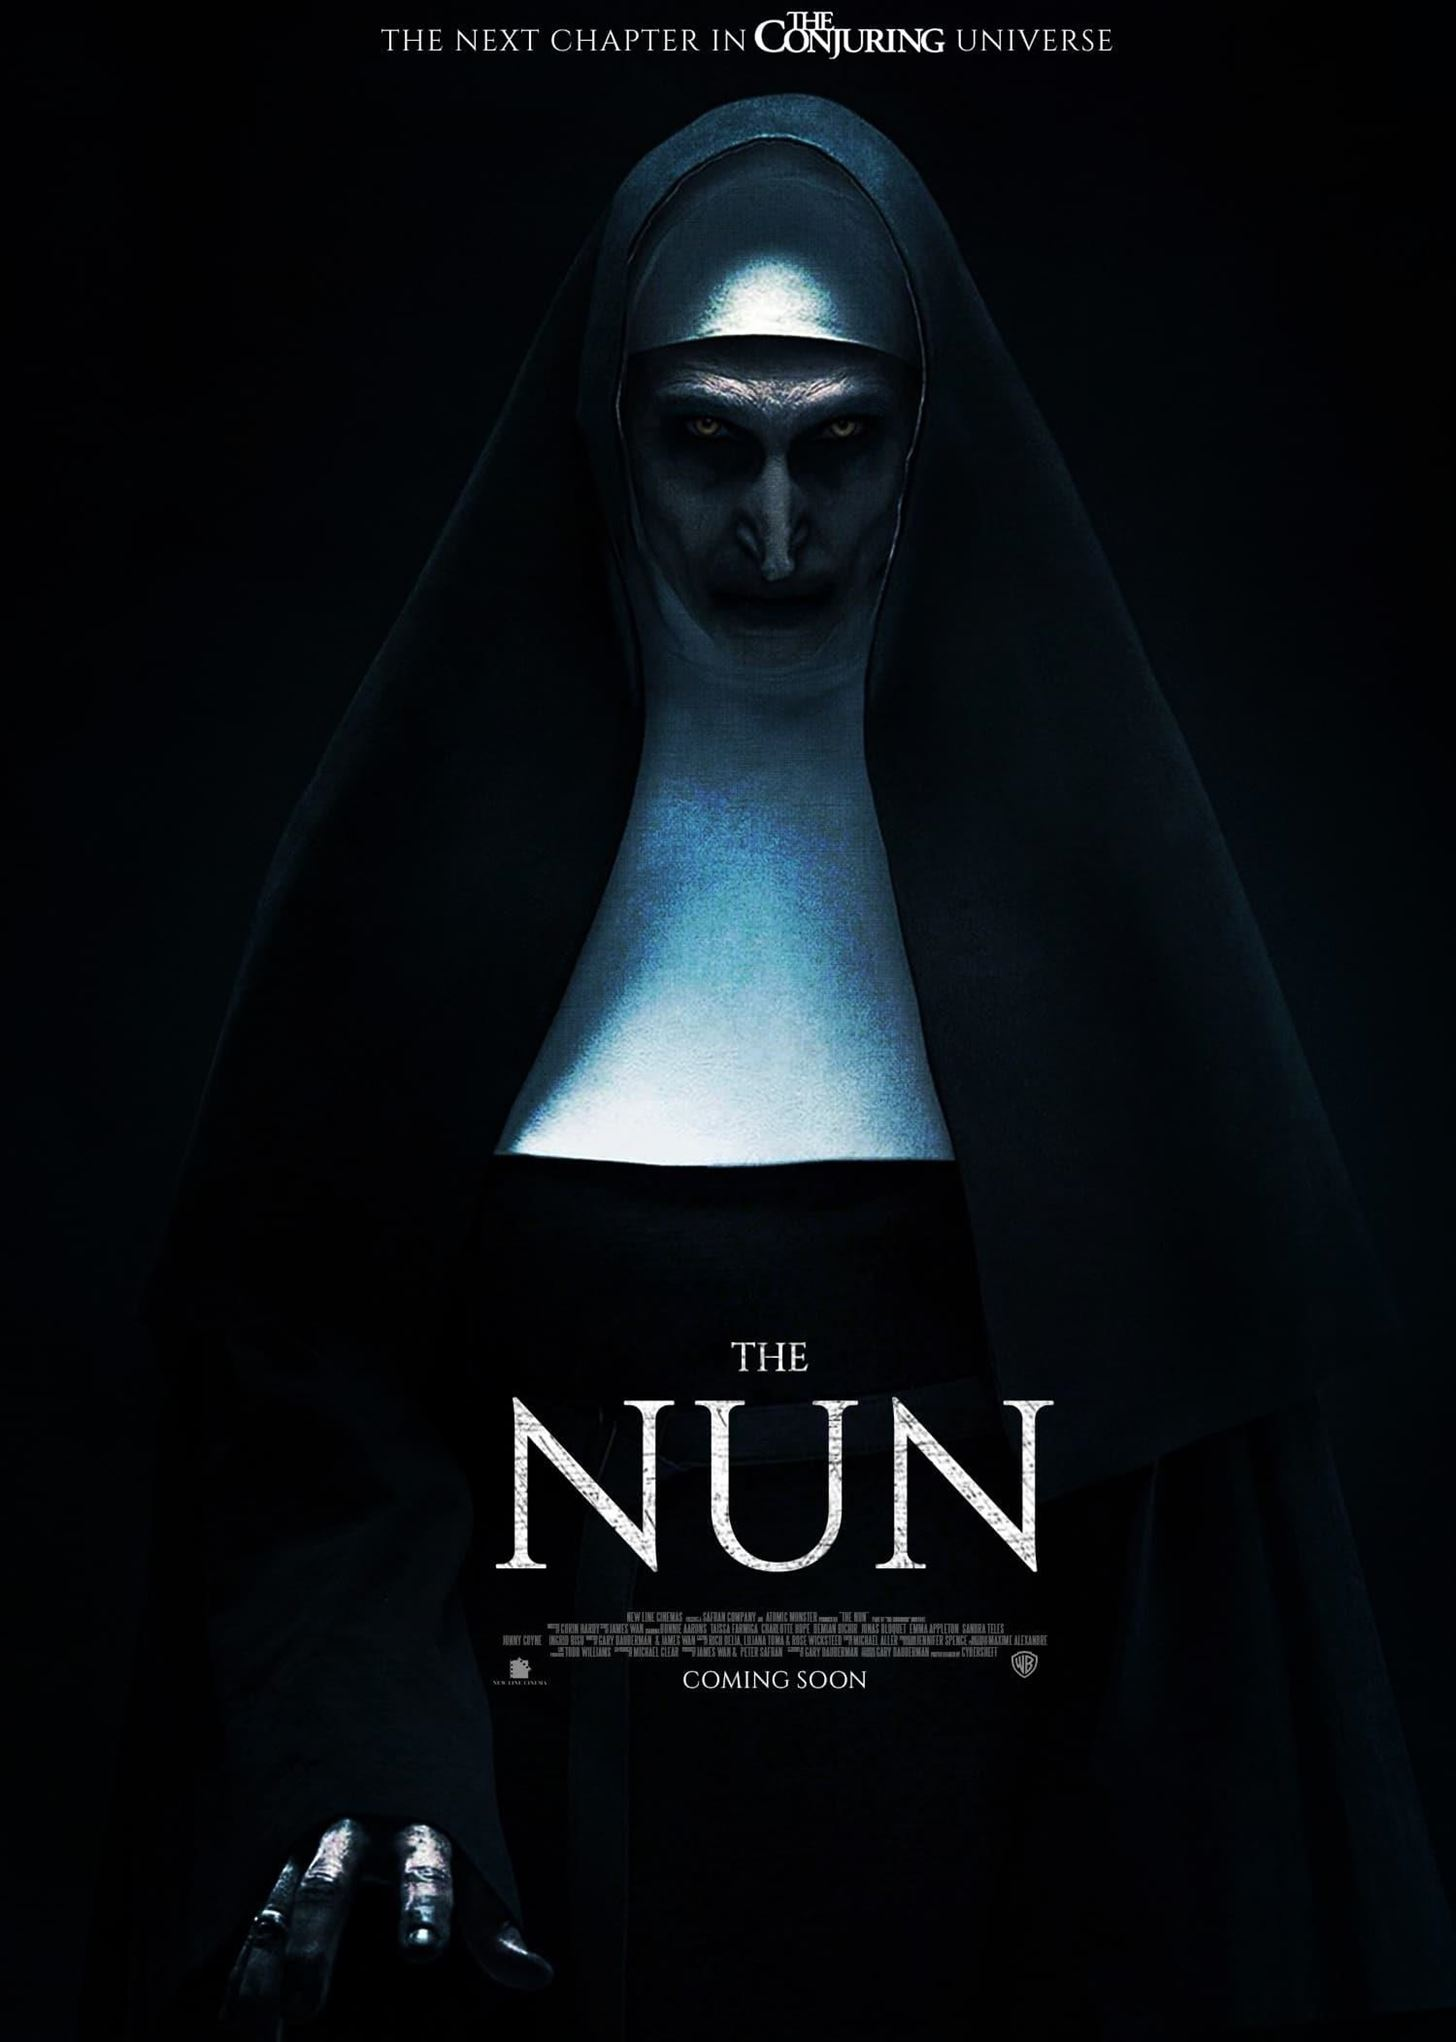 The Nun Online Free Full Movie 1080p